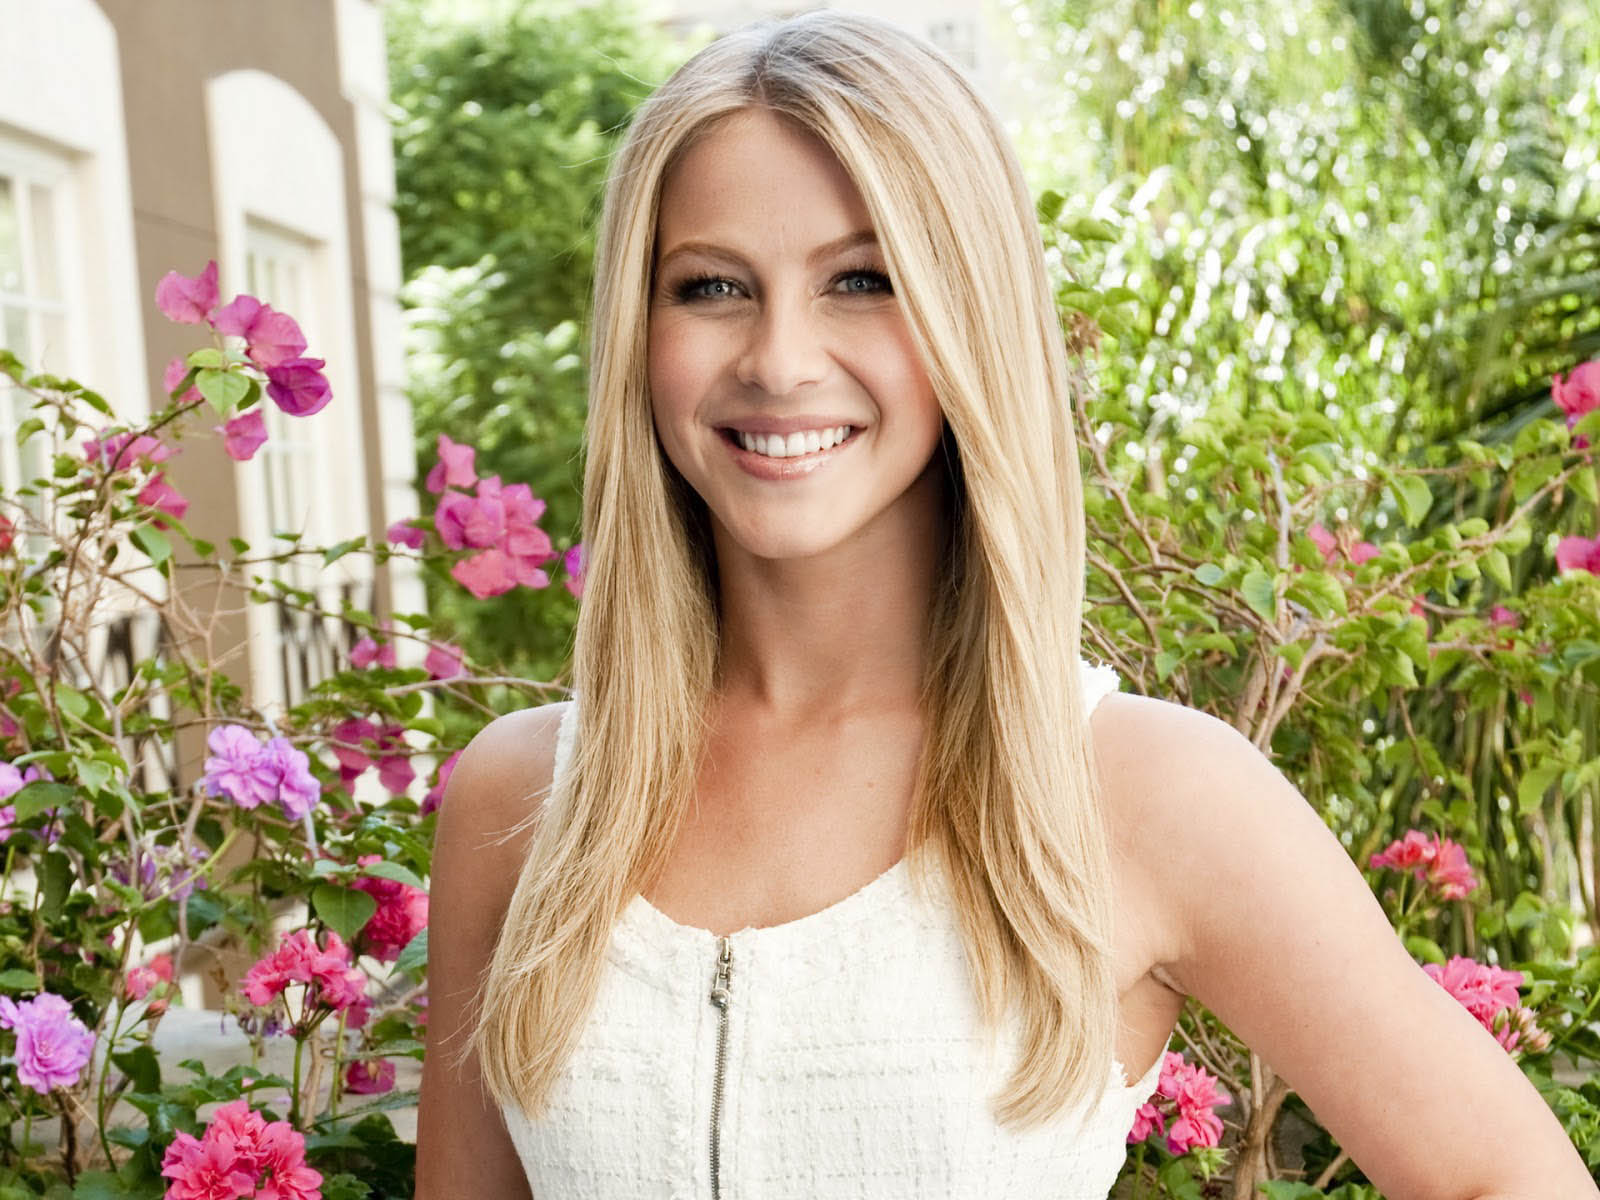 julianne hough smile wallpaper pictures 52085